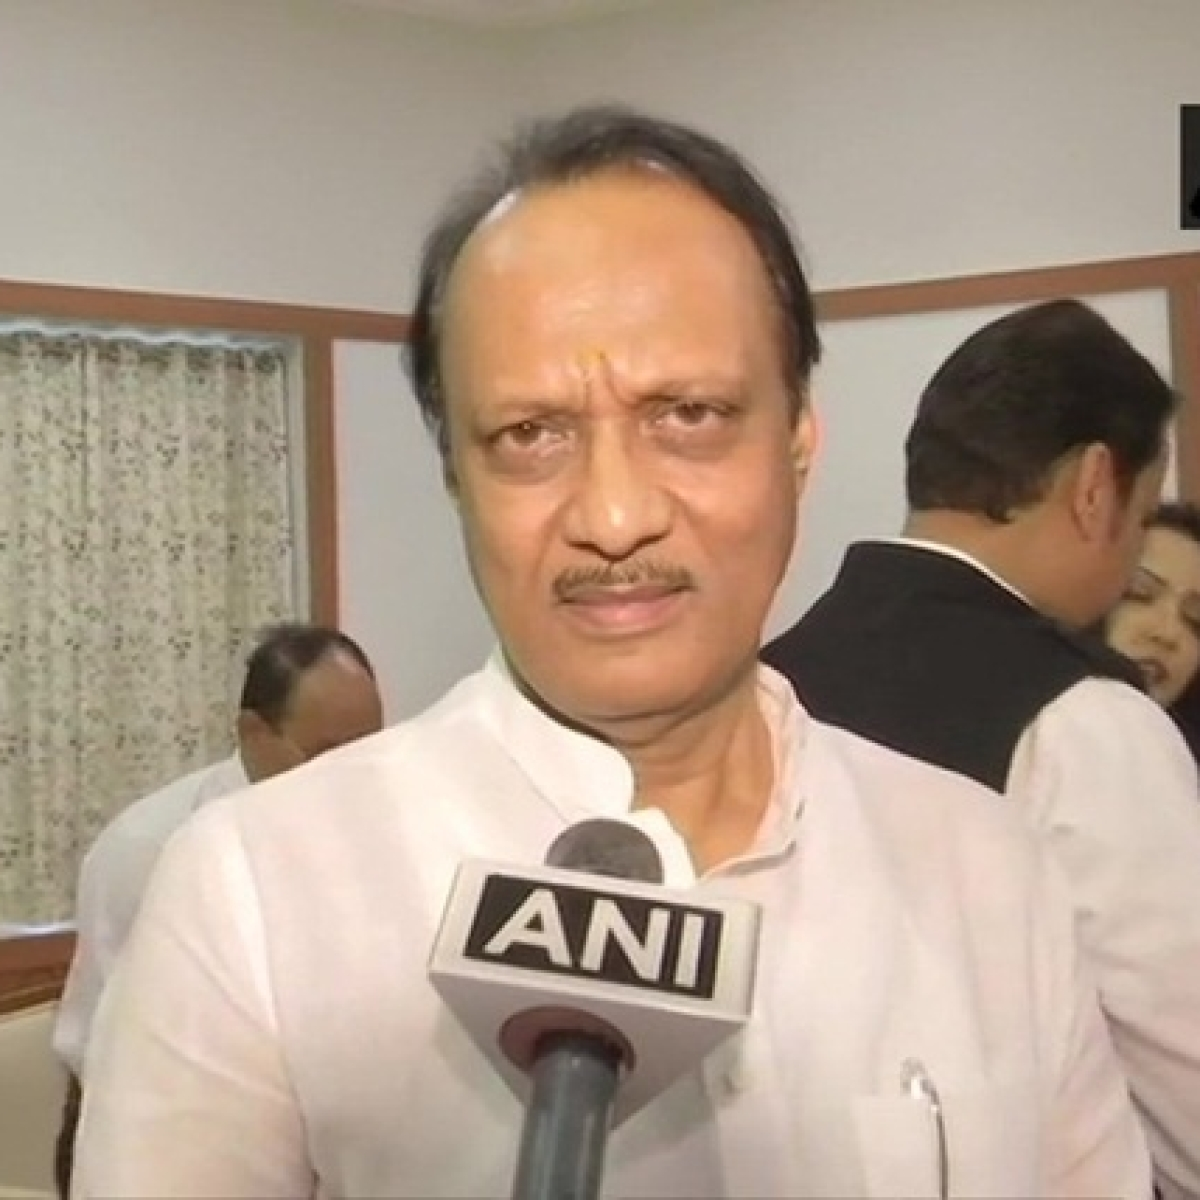 Formed govt to resolve farmers' issues: Ajit Pawar after taking oath as Maha's Deputy CM